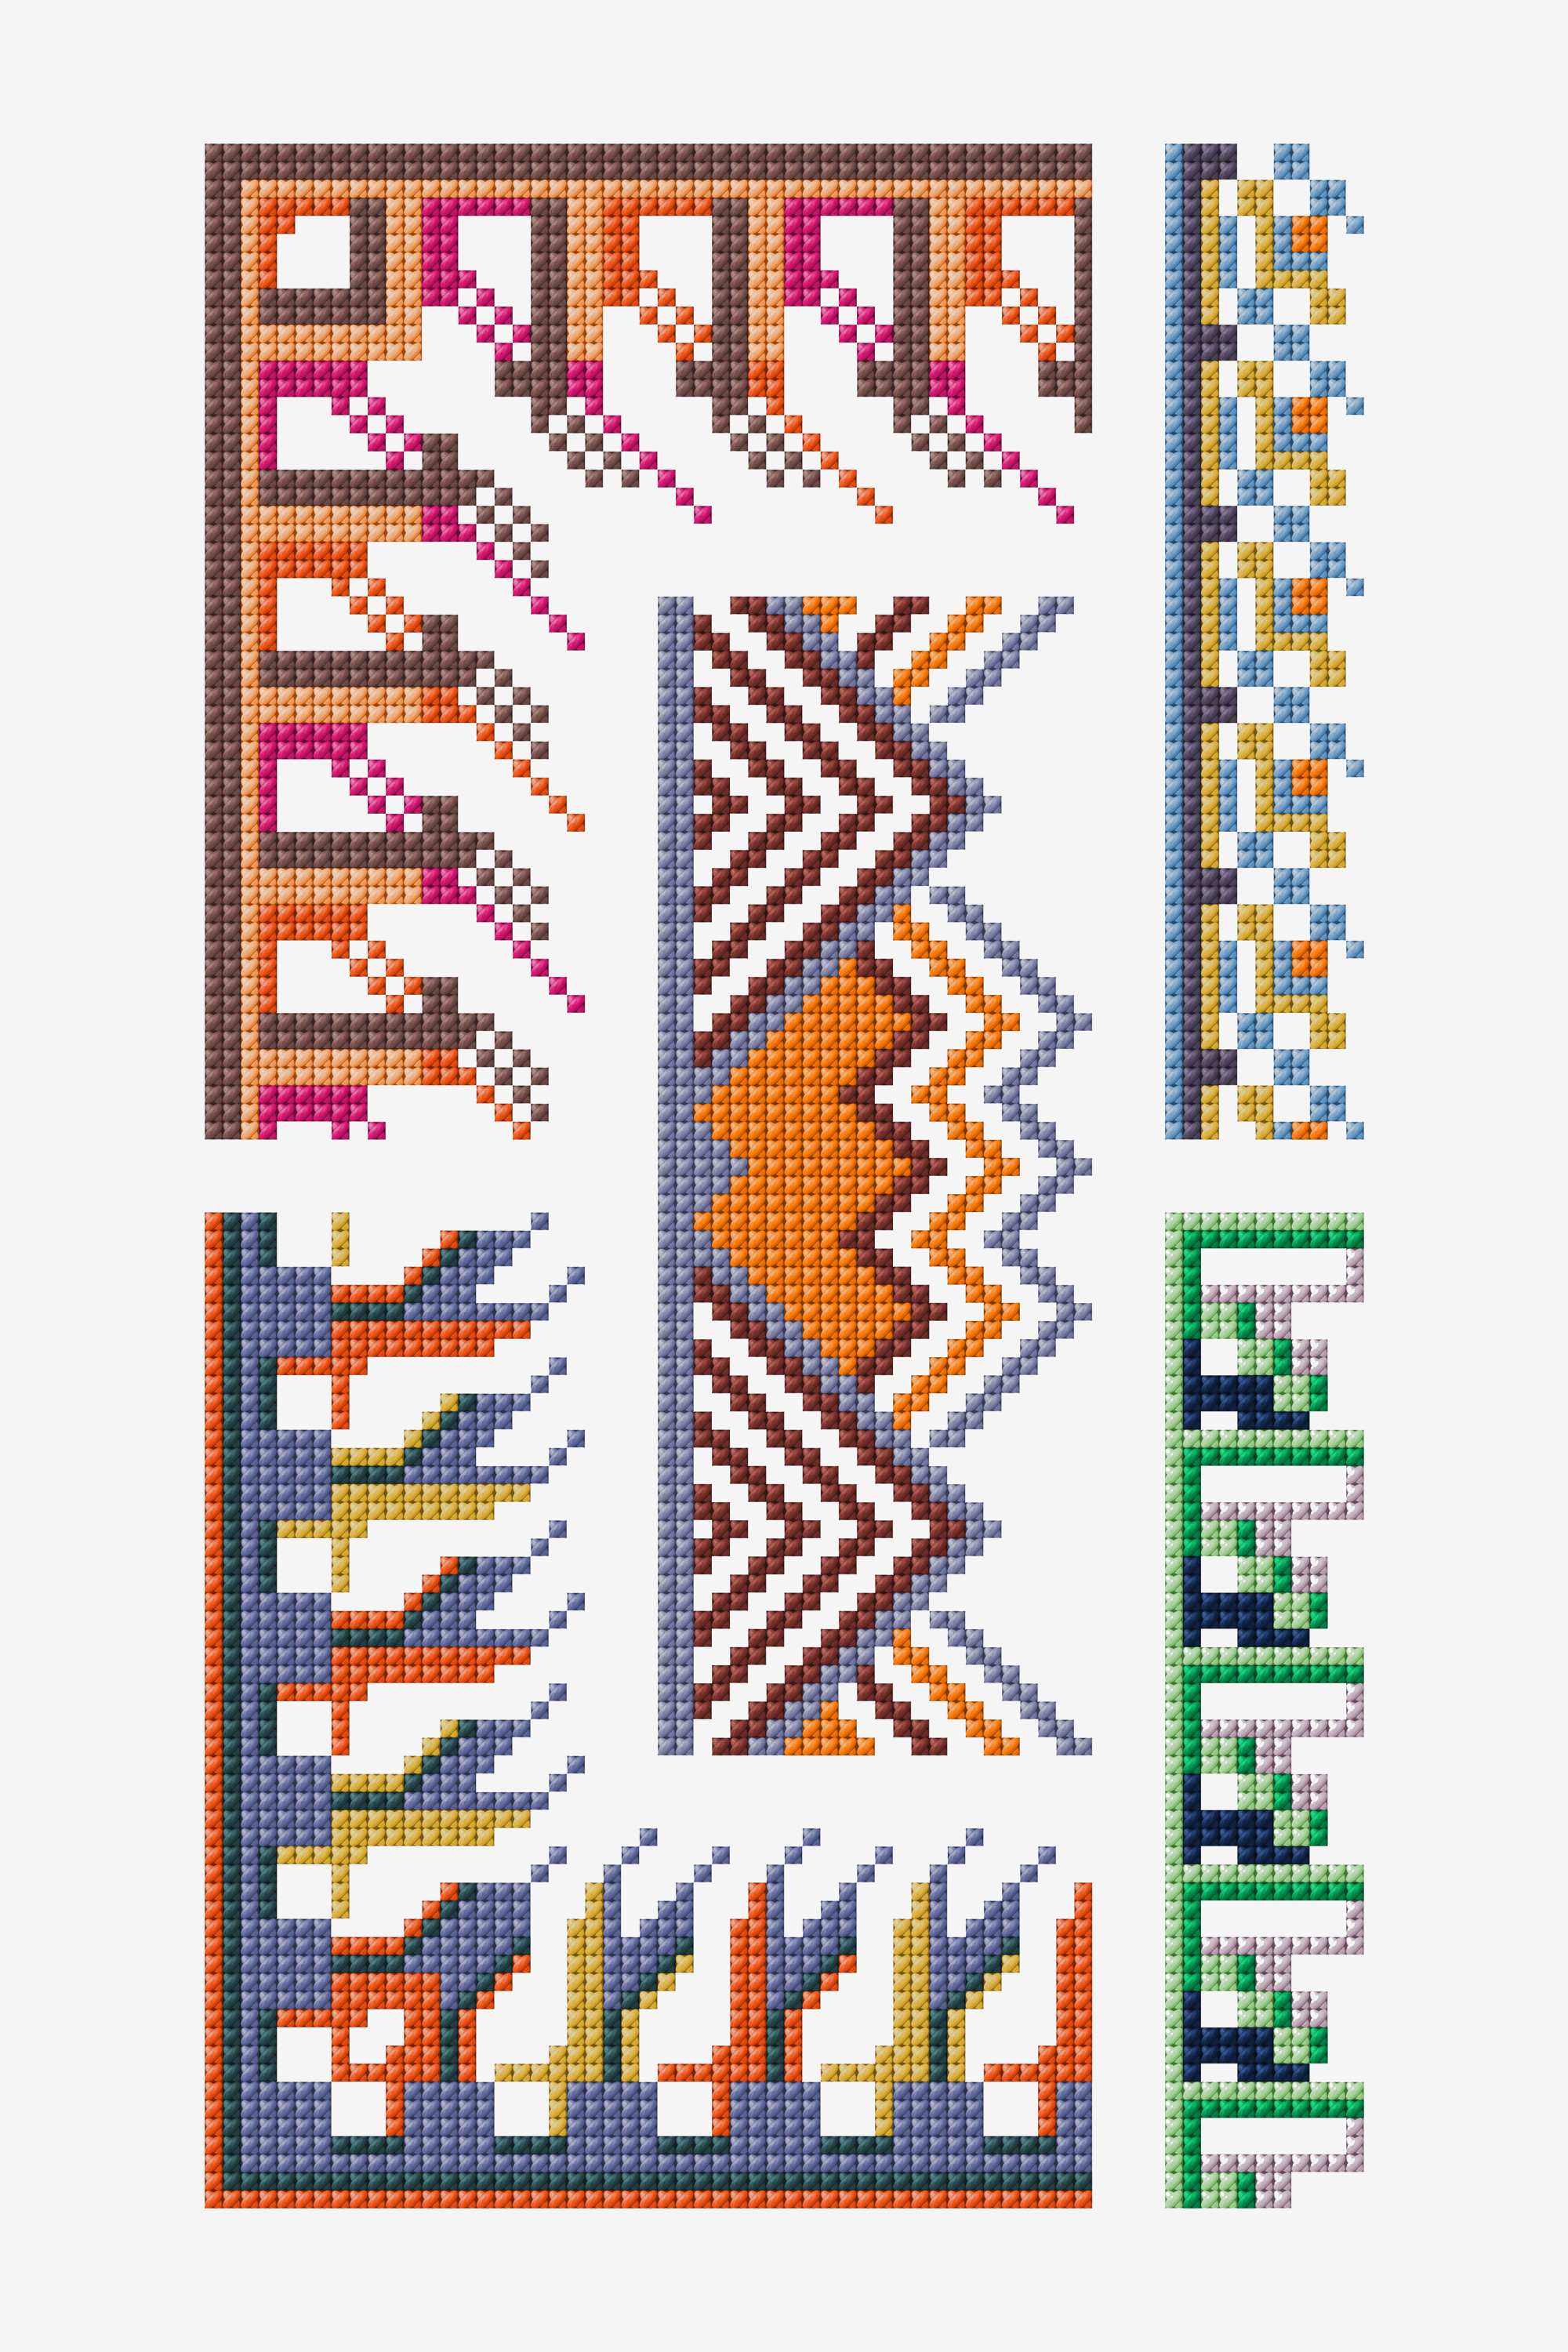 Free embroidery designs and cross stitch patterns dmc point de marque 611 pattern geenschuldenfo Images